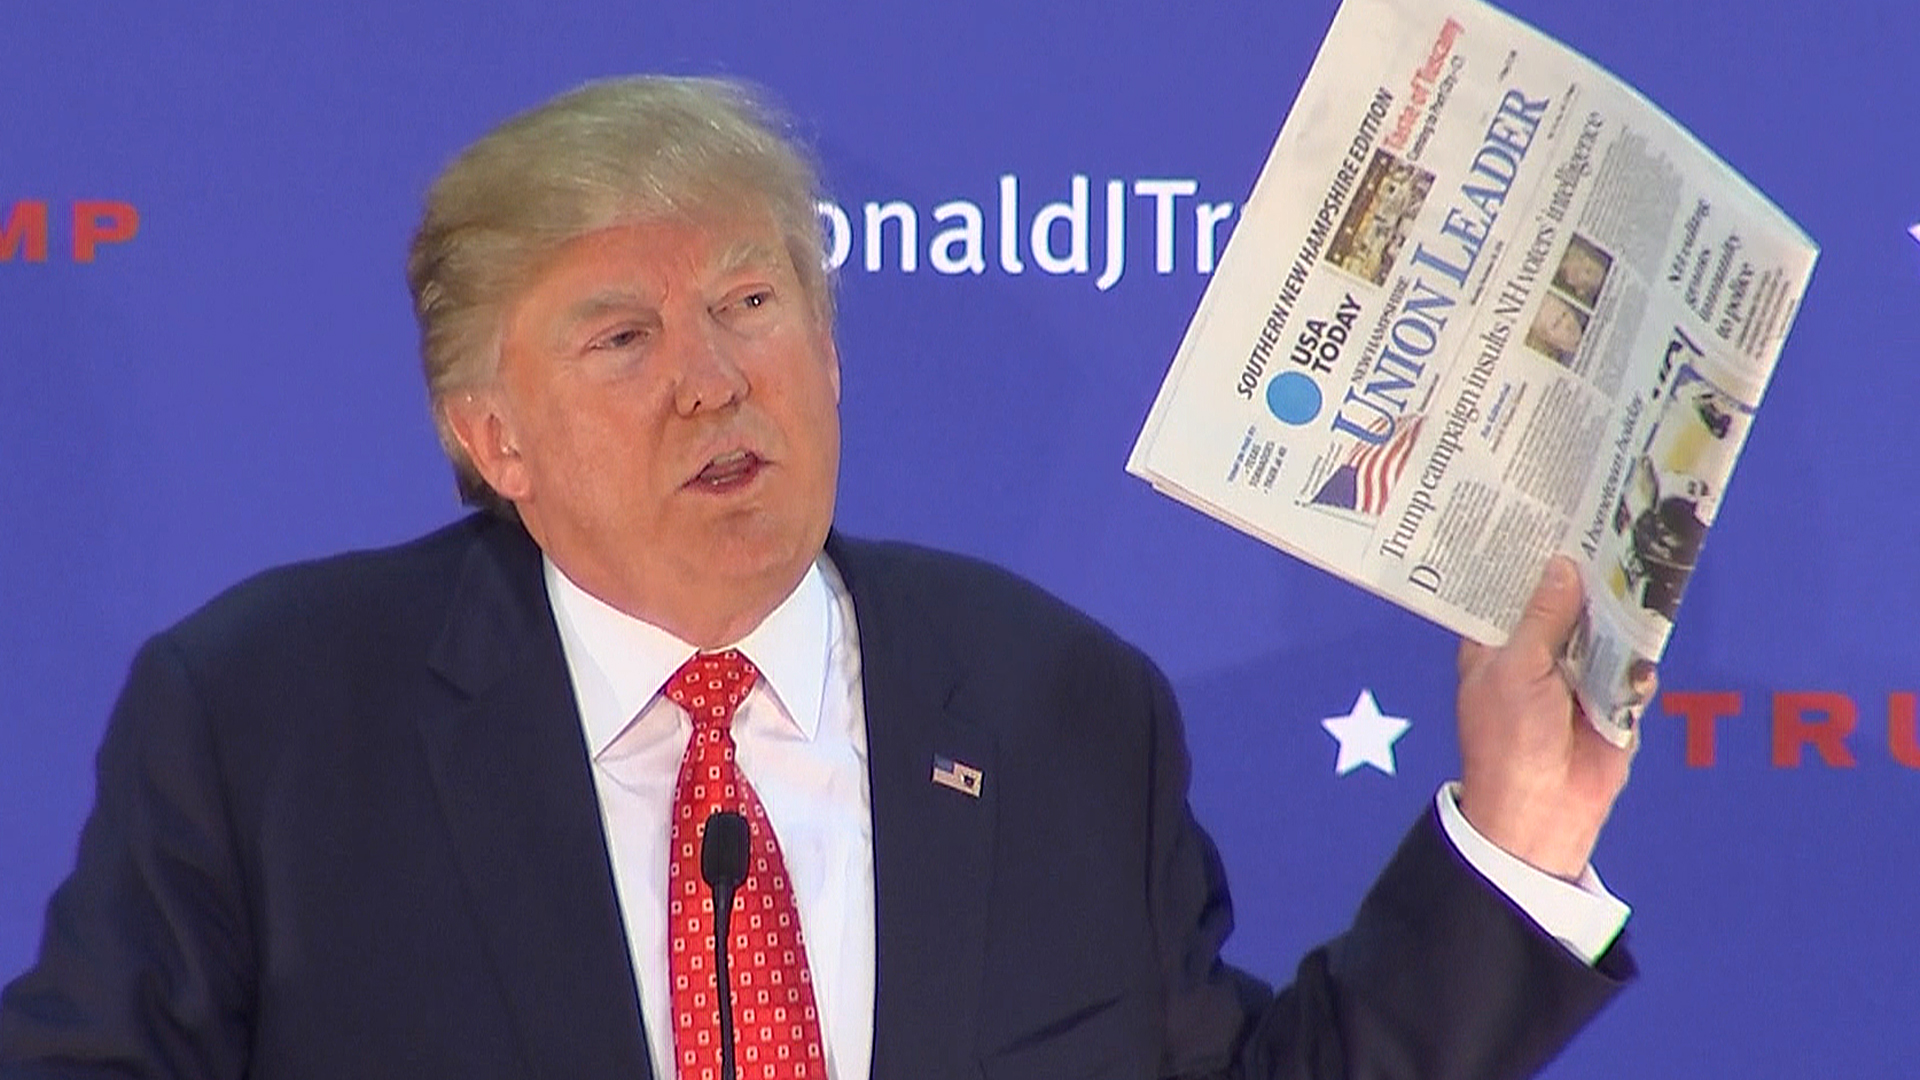 Donald Trump: Union Leader Newspaper 'Is a Piece of Garbage' - NBC ...